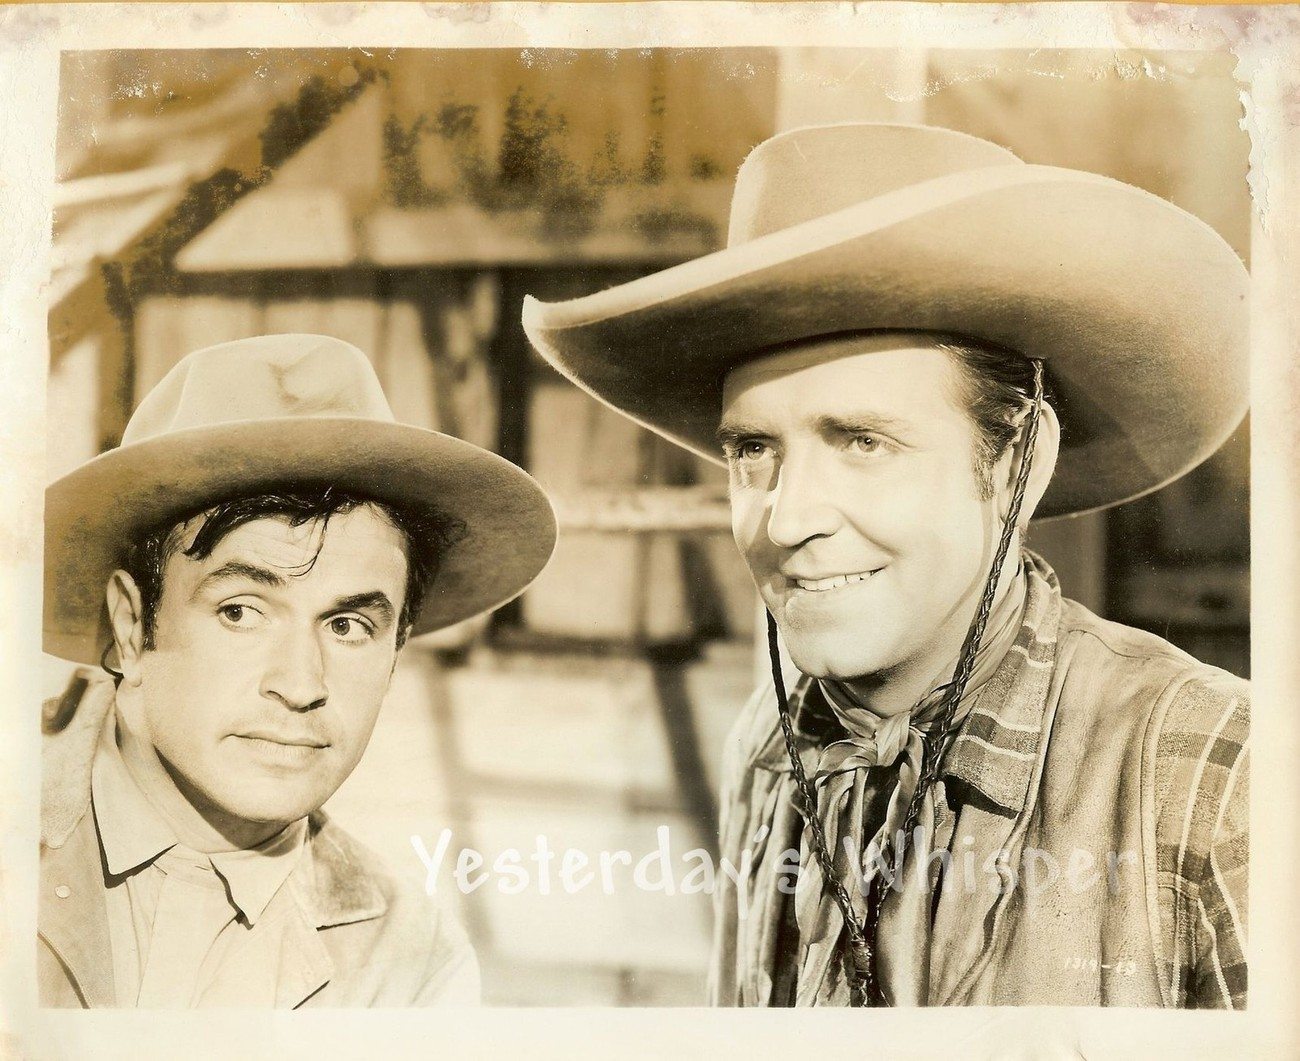 Robert Paige Noah Beery Jr. Frontier Badmen c.1943 Original Universal Photo